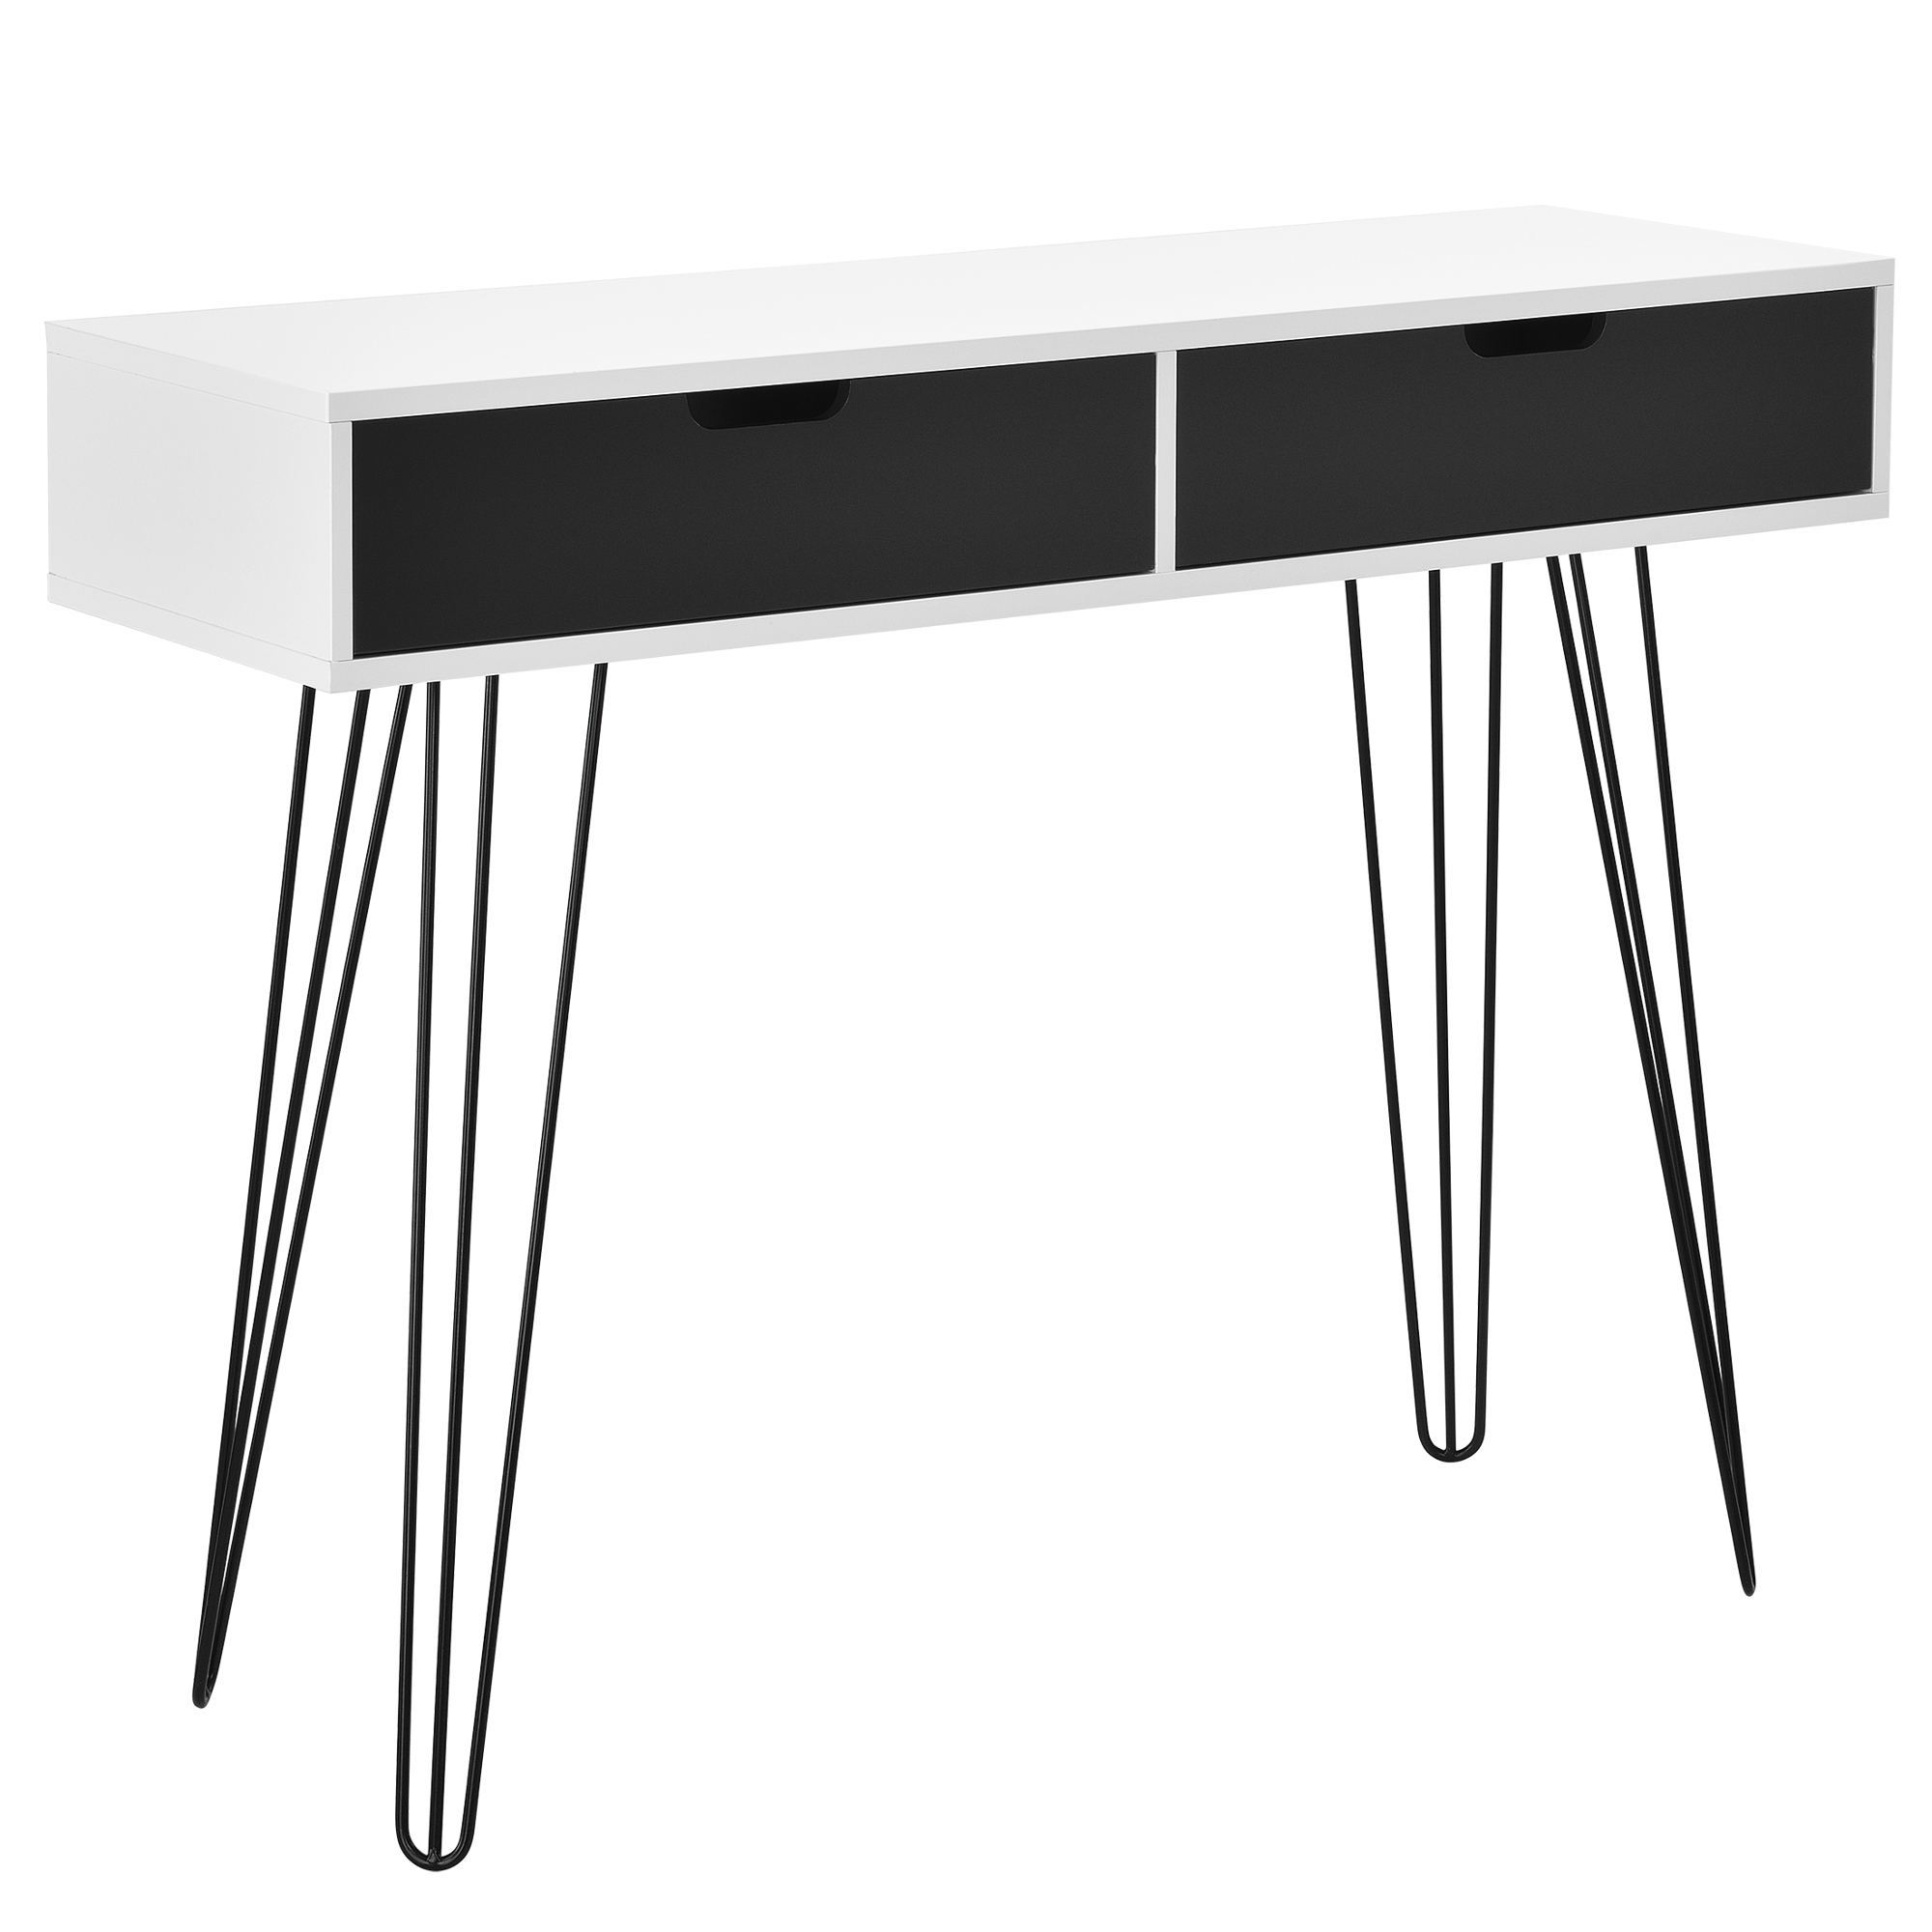 schreibtisch wei grau konsole sekret r sideboard b ro beistell tisch ebay. Black Bedroom Furniture Sets. Home Design Ideas